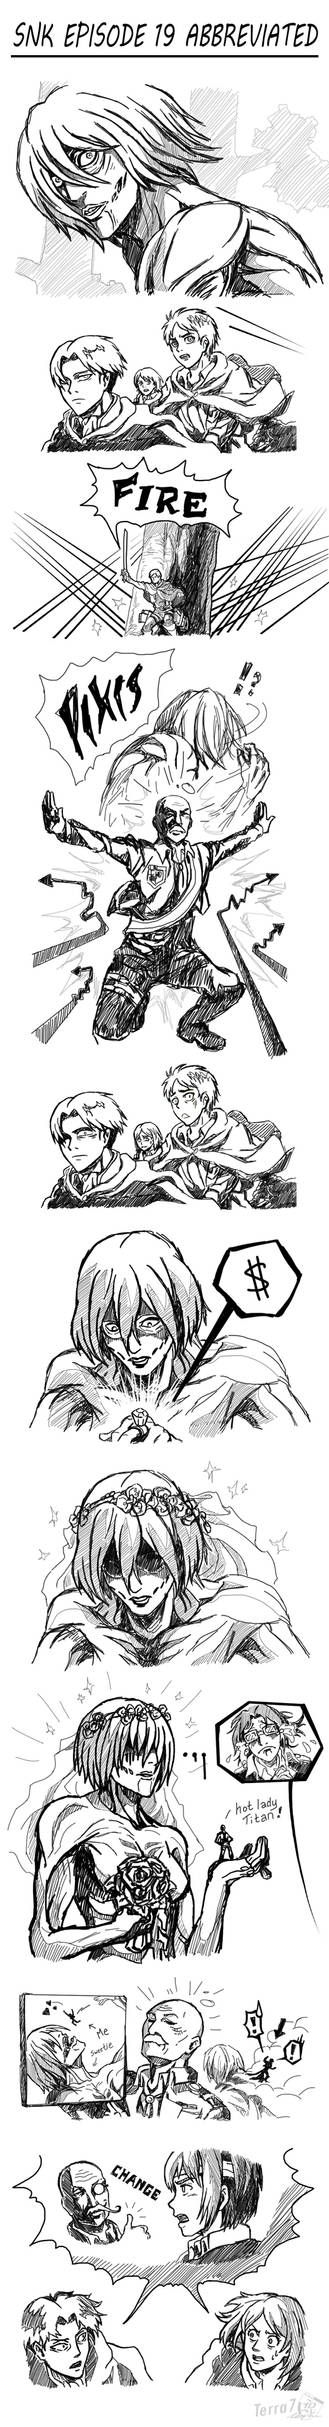 Attack on Titan - Those Who Bring Change